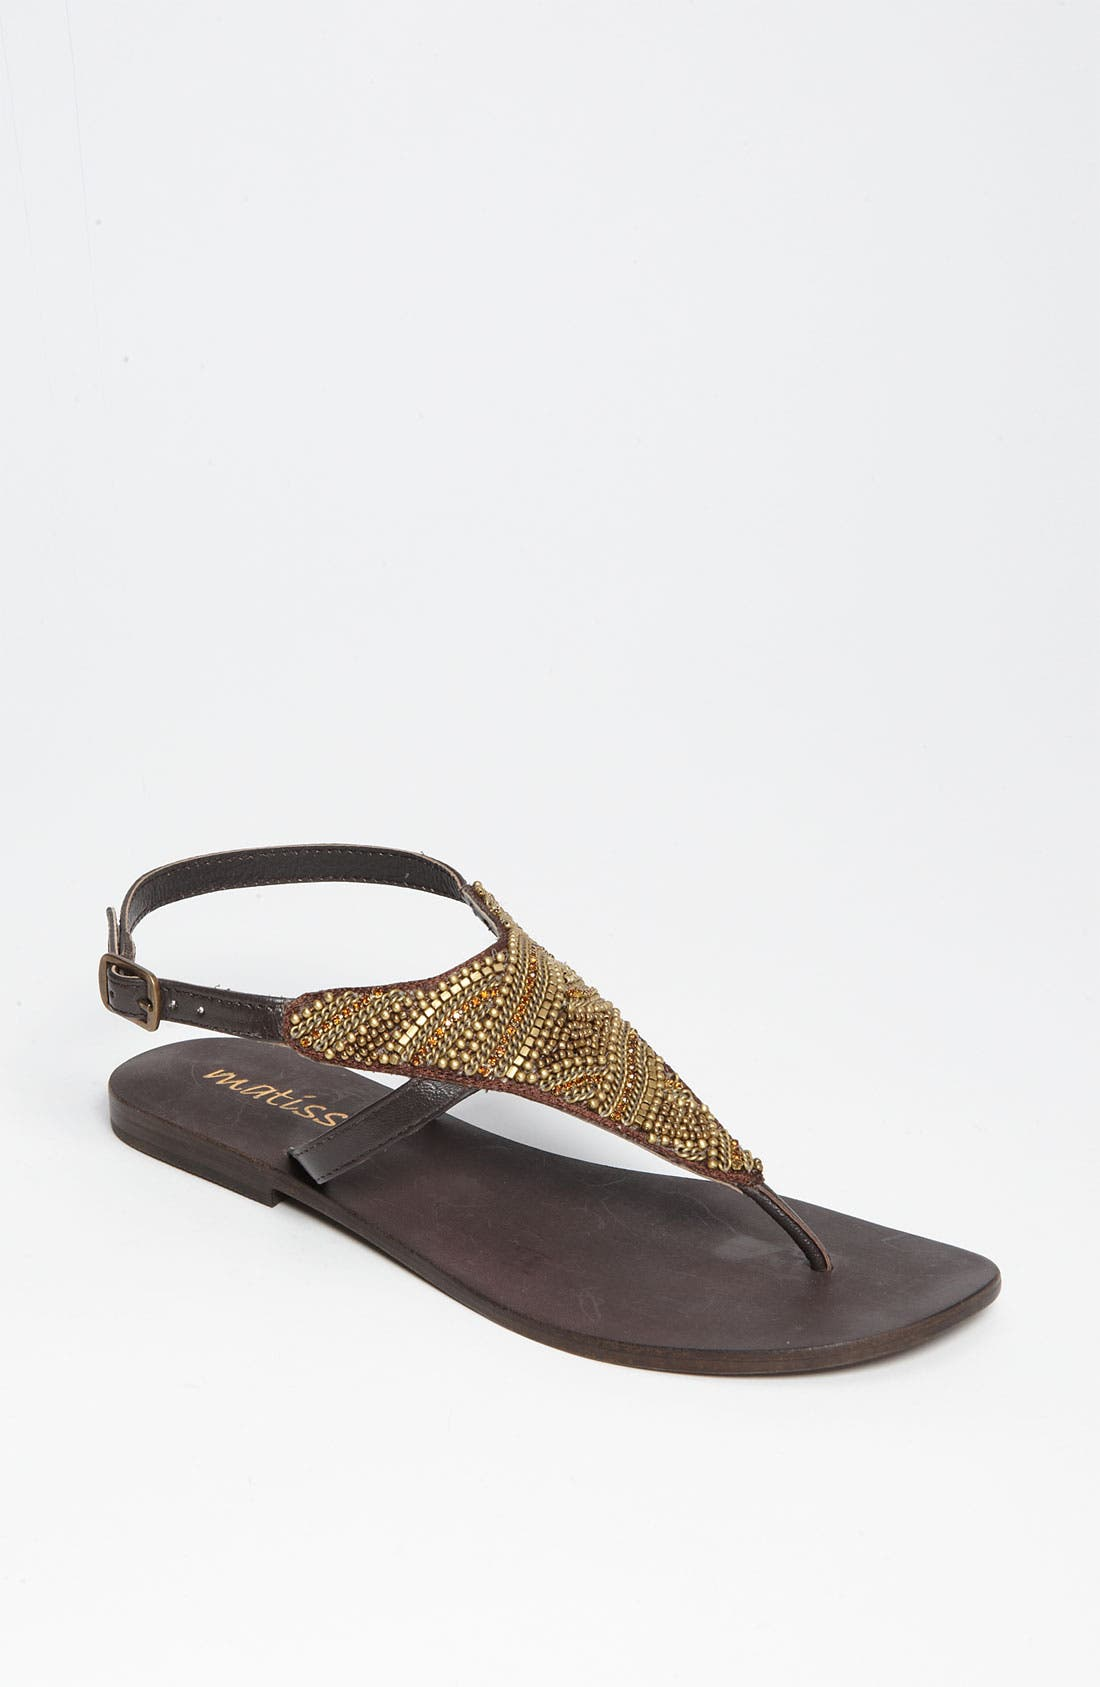 Alternate Image 1 Selected - Matisse 'Dina' Sandal